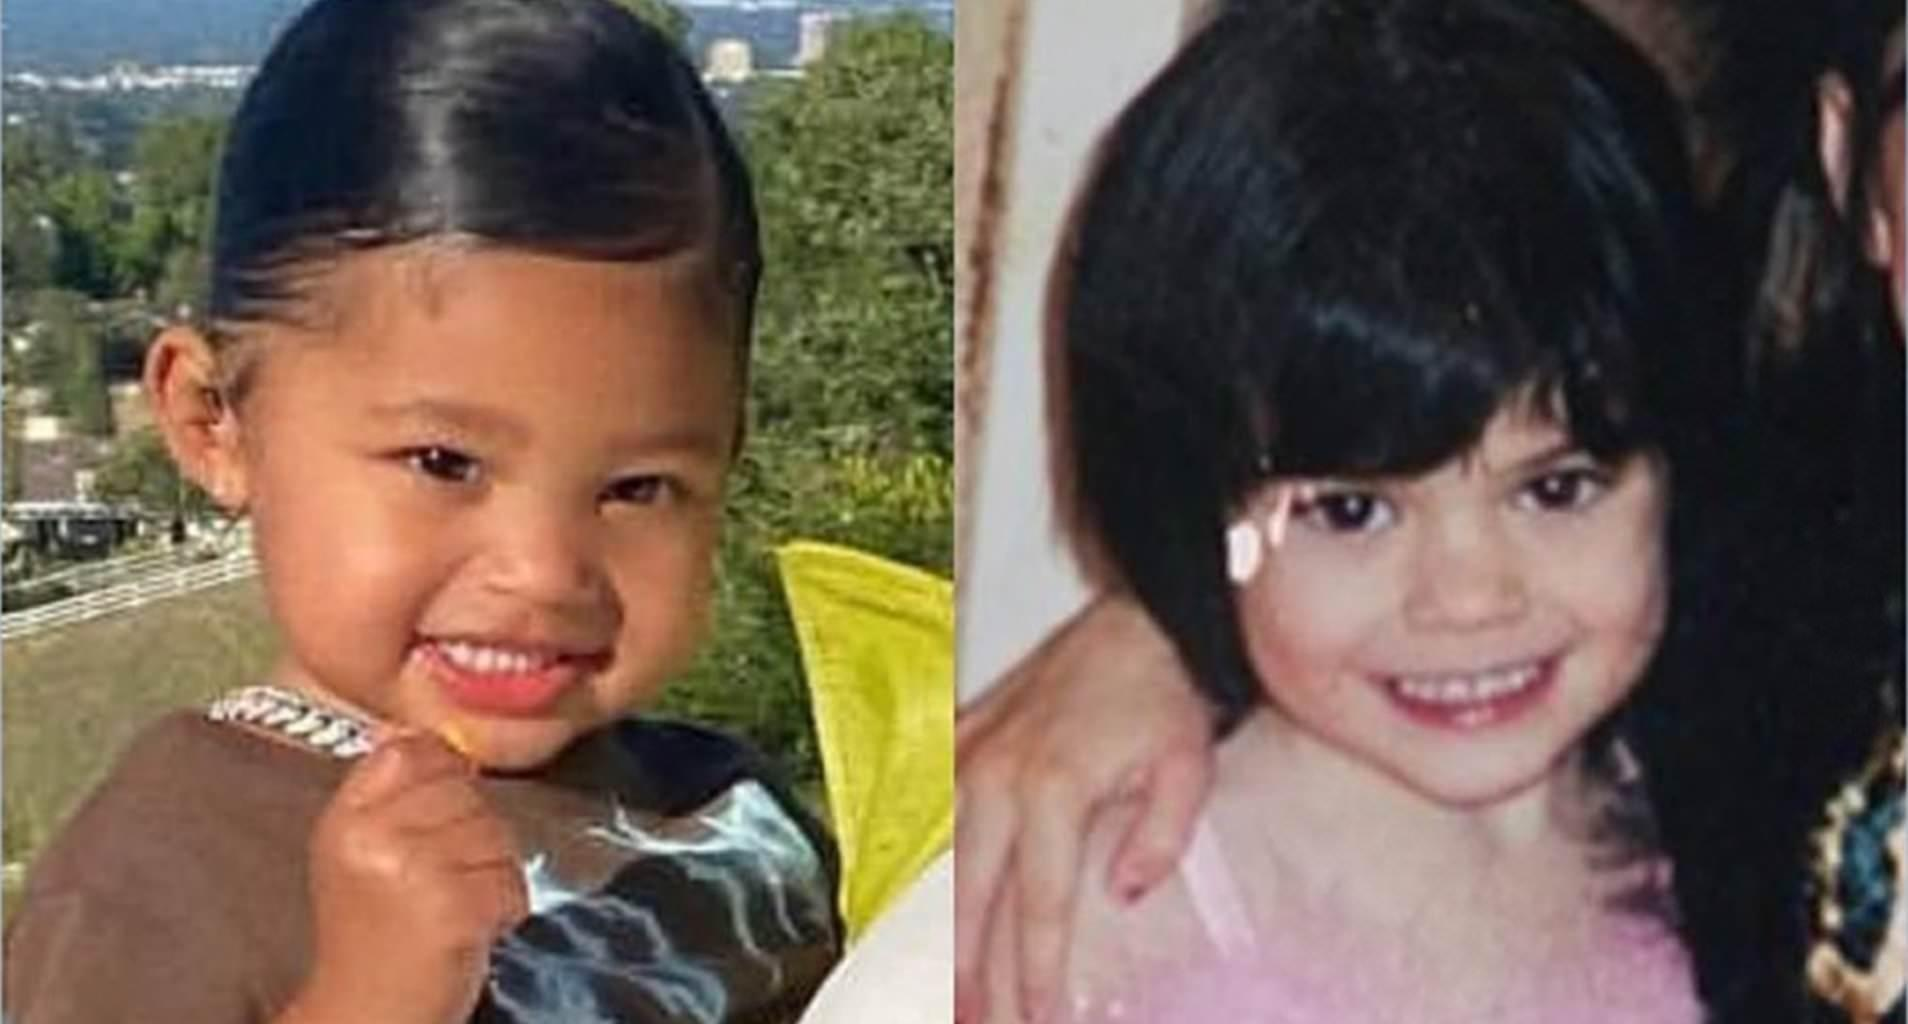 KUWK: Kylie Jenner And Daughter Stormi Have The Same Toothy Smile In Side By Side Pics!